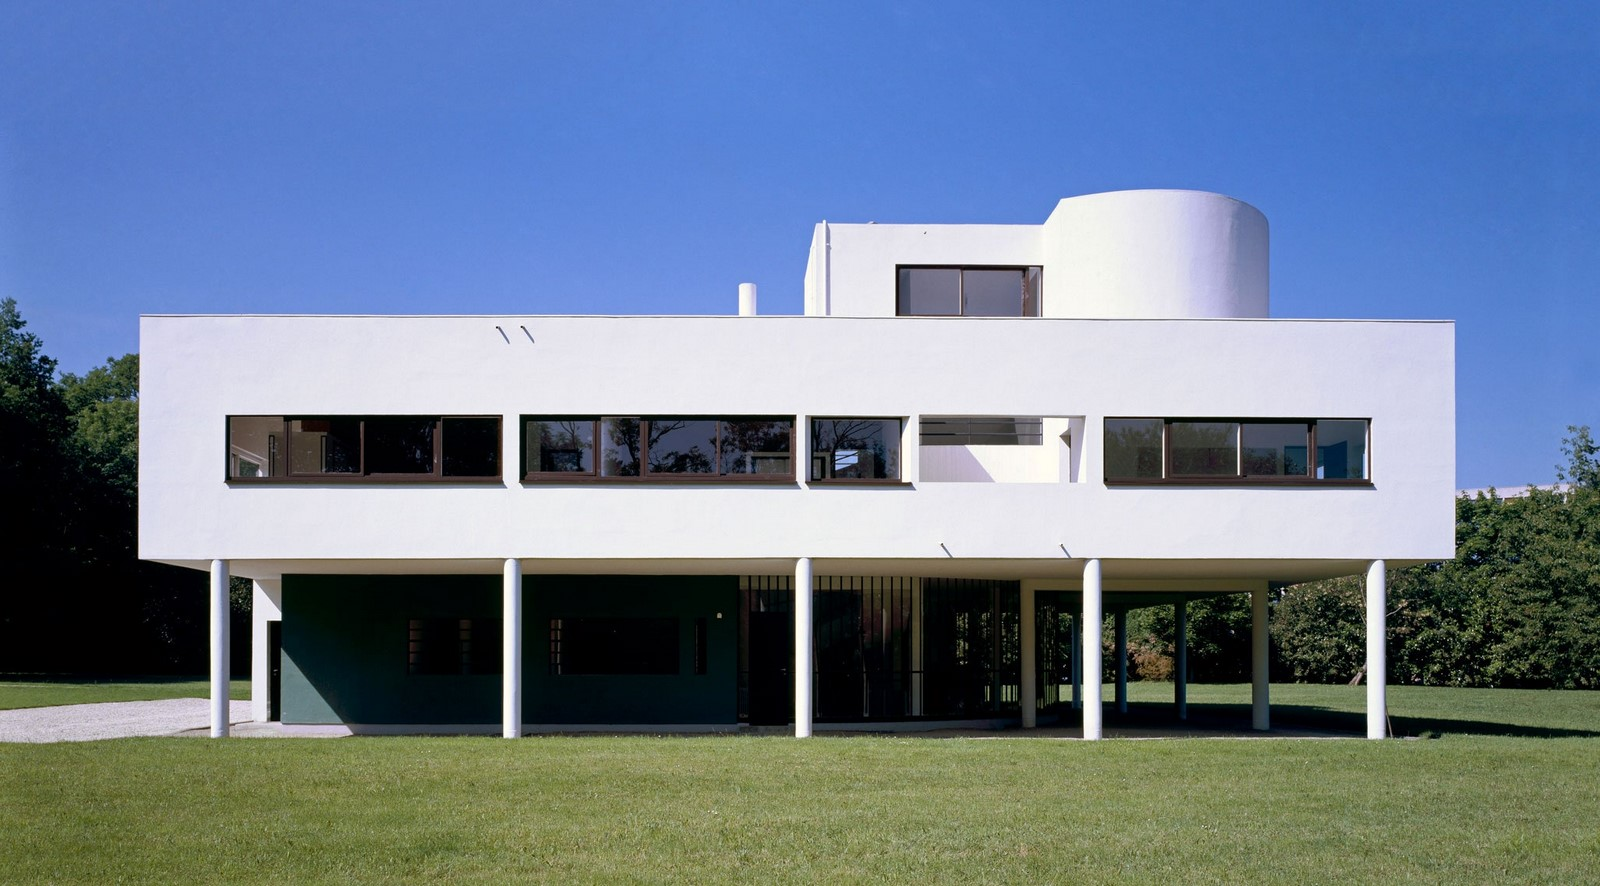 10 Things you did not know about Villa Savoye - Sheet1